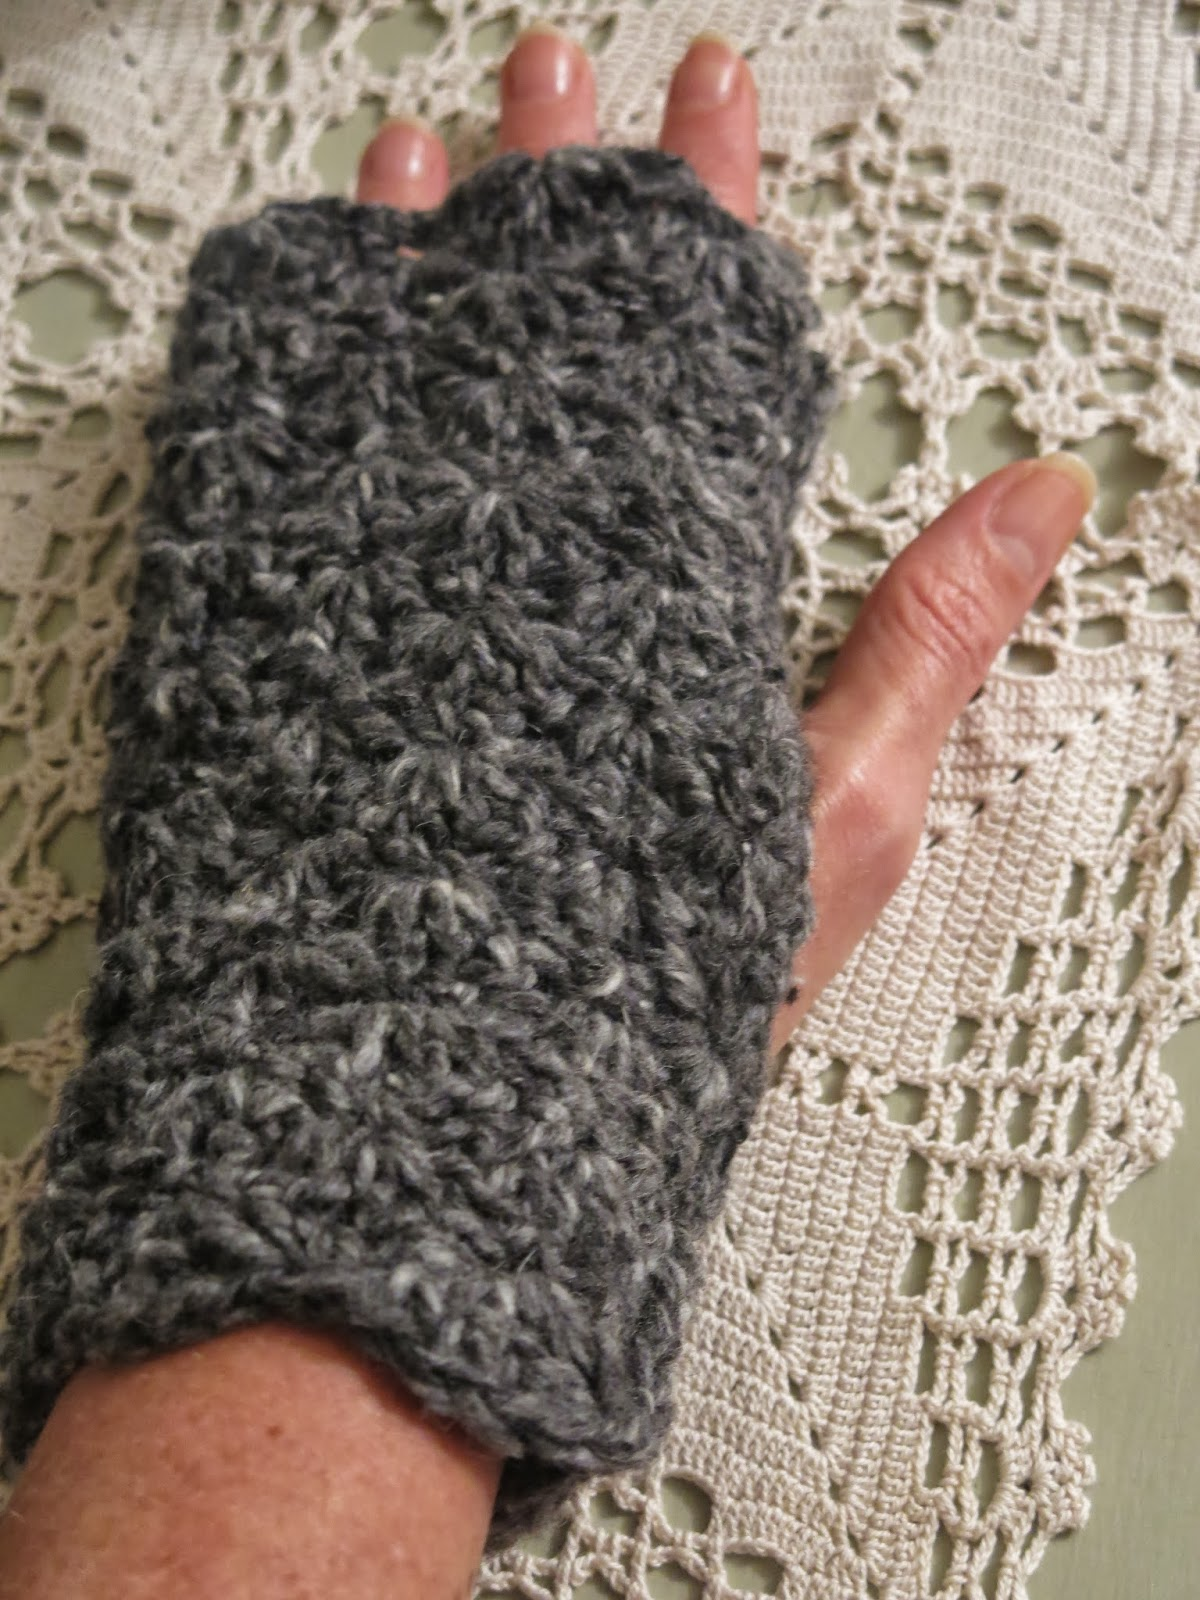 Cosmos and Cotton: Crochet Arm Warmers